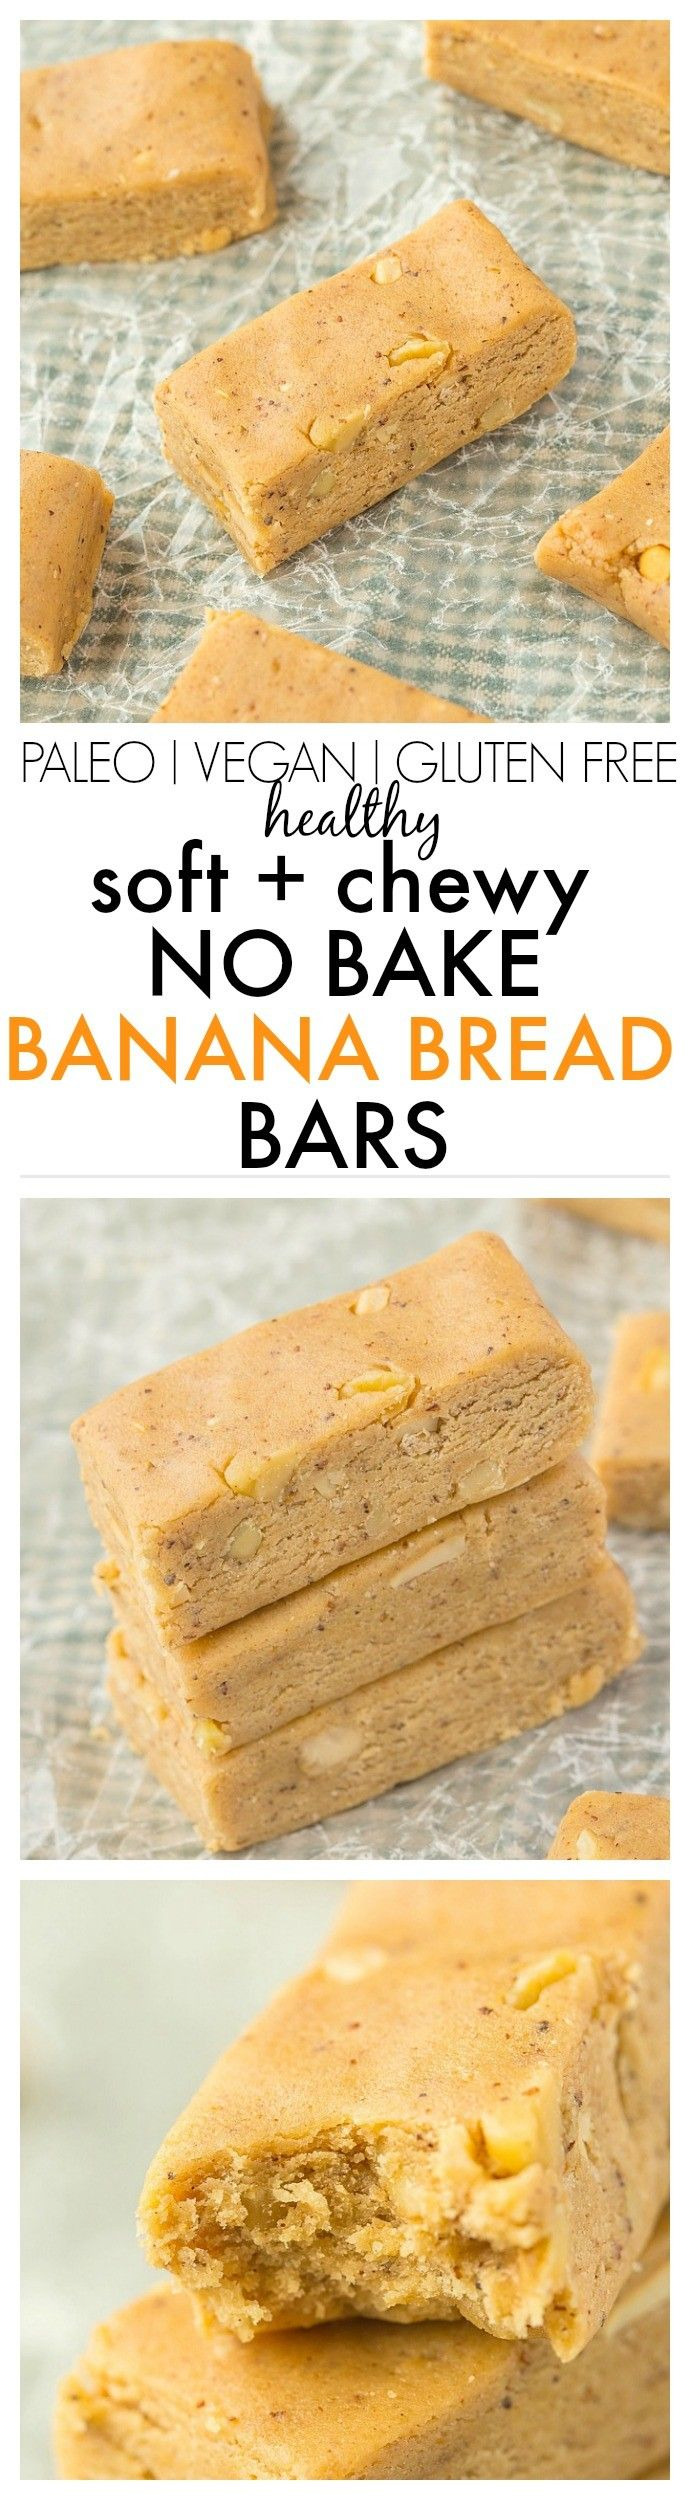 No Bake Banana Bread Protein Bars which have the taste and texture of a classic banana bread MINUS the nasties- Secretly healthy! {vegan, gluten free, paleo recipe}